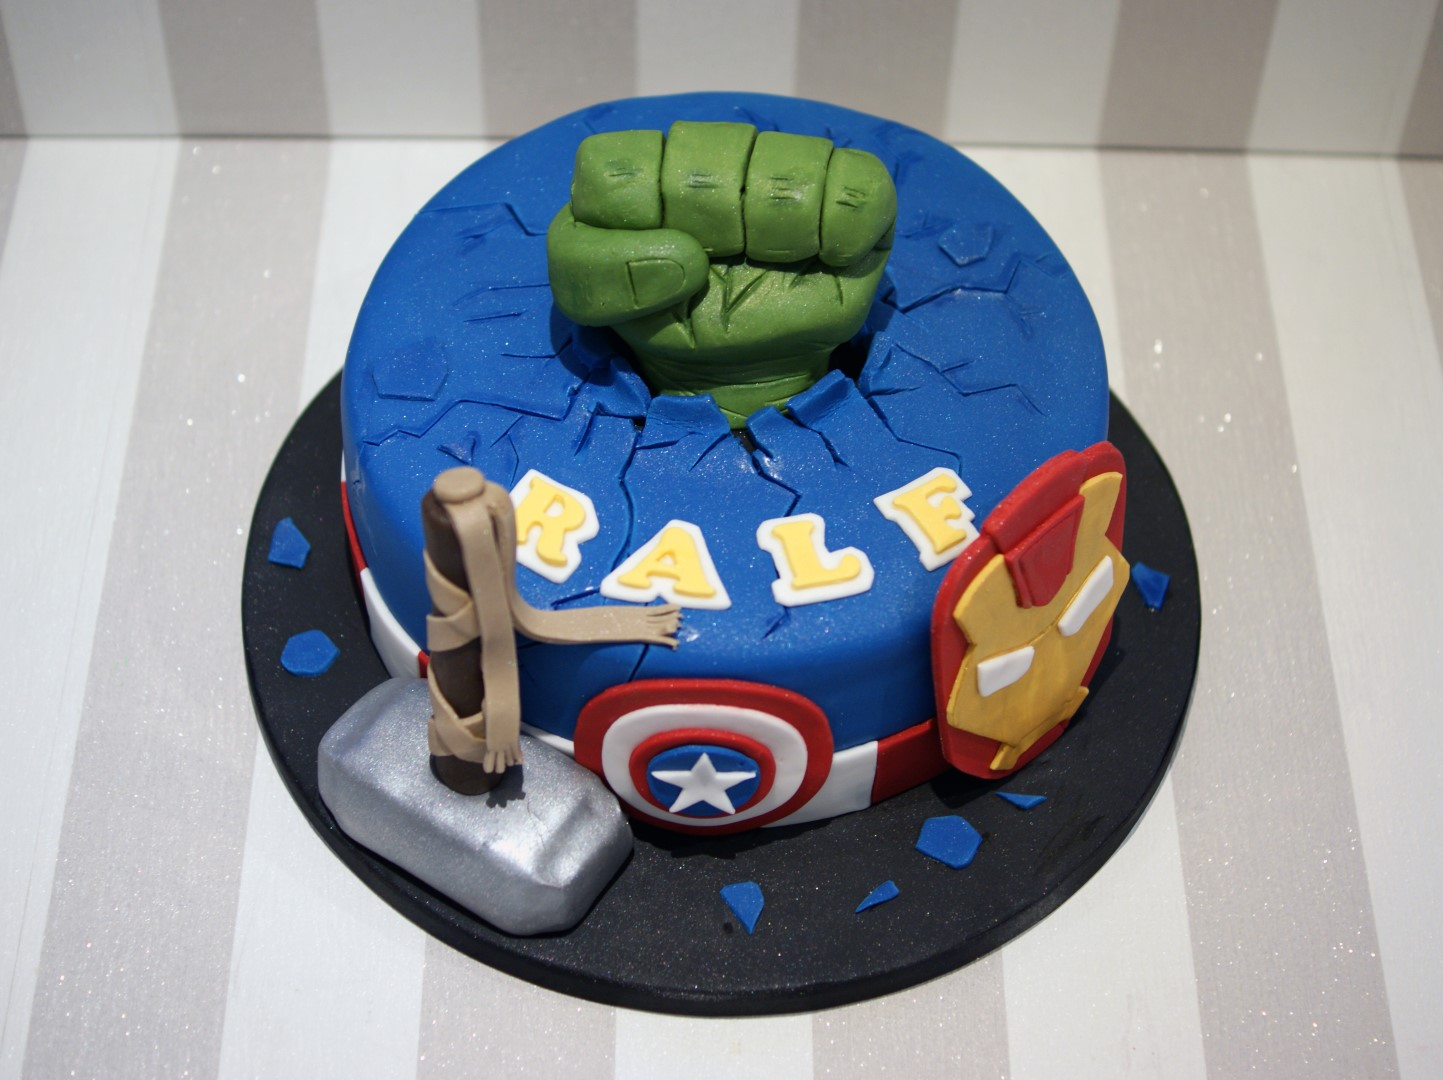 birthday cakes avengers themed birthday cake posted 2 years ago by ...